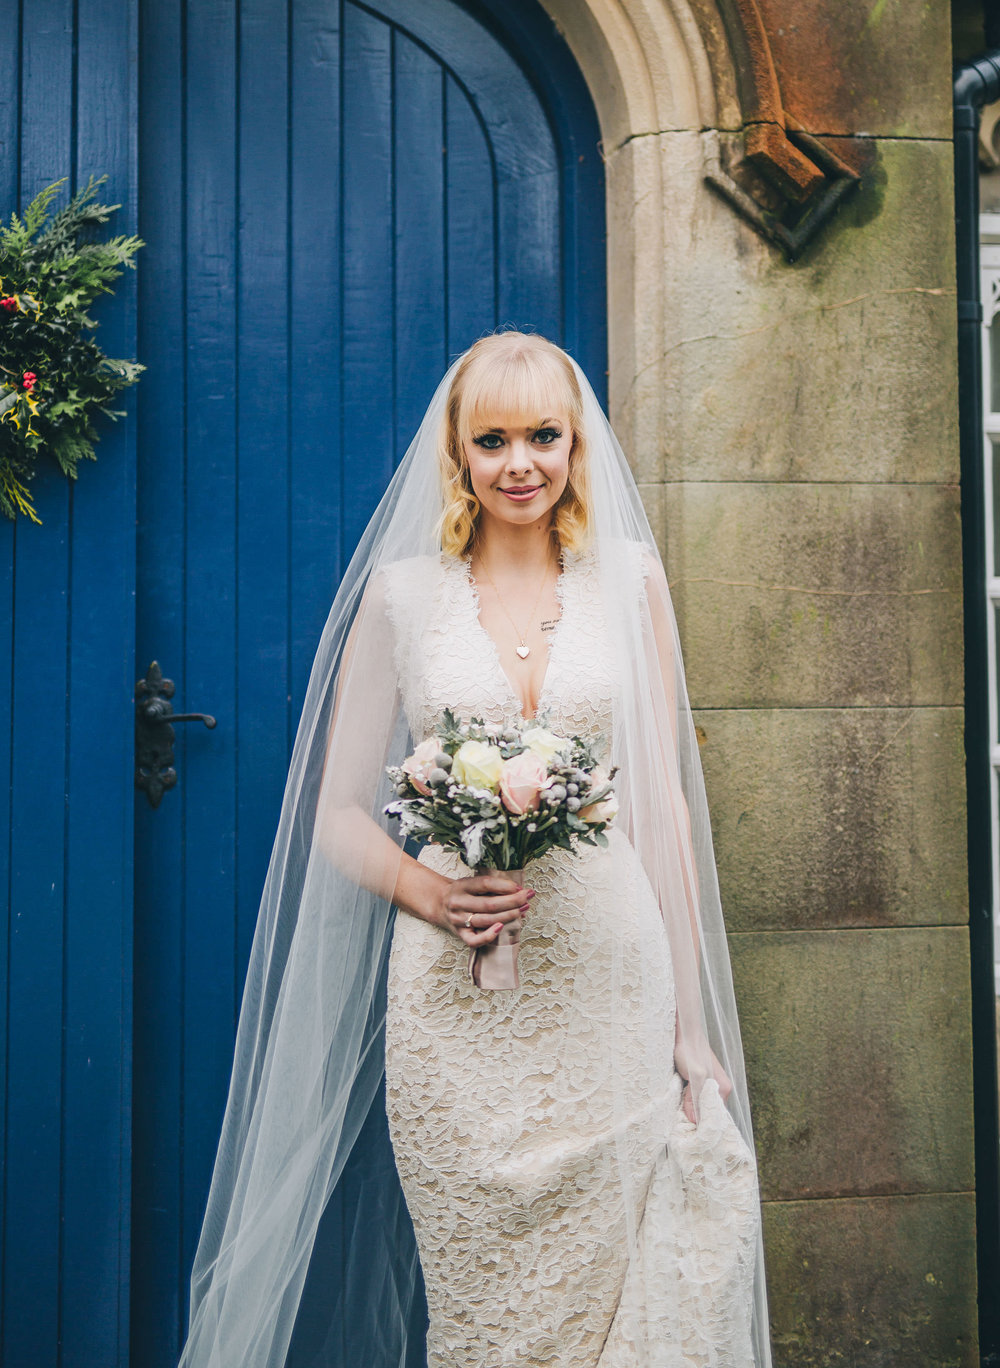 The bride holding her wedding bouquet outside of Combermere Abbey for her winter wedding.